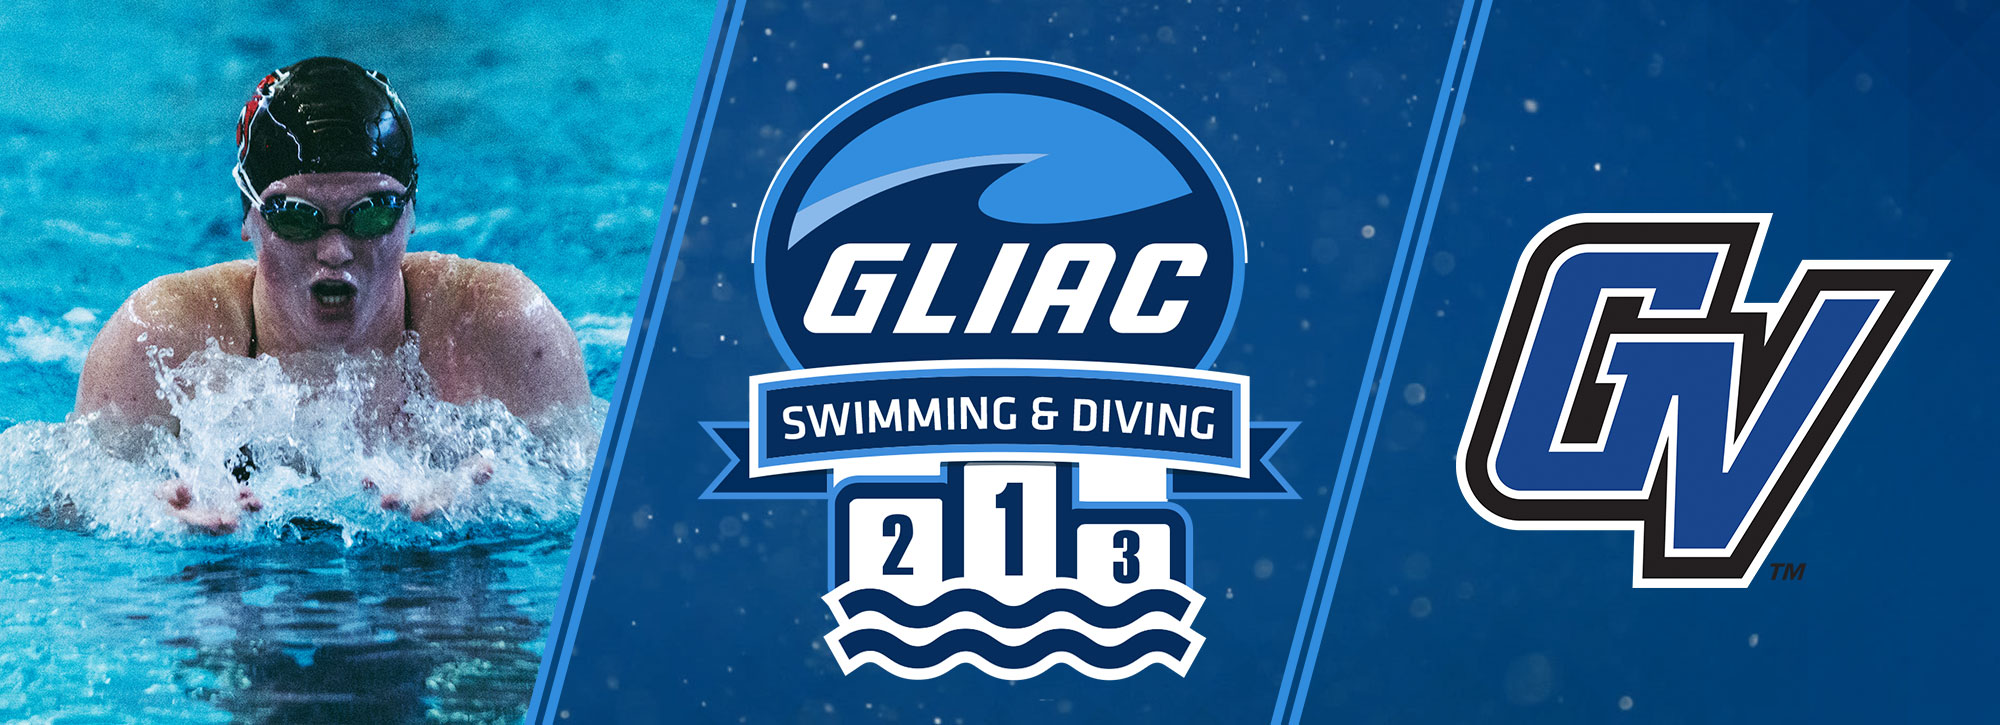 Davenport's Postmus, Grand Valley State's Goodyear Selected GLIAC Swimming Athletes of the Week